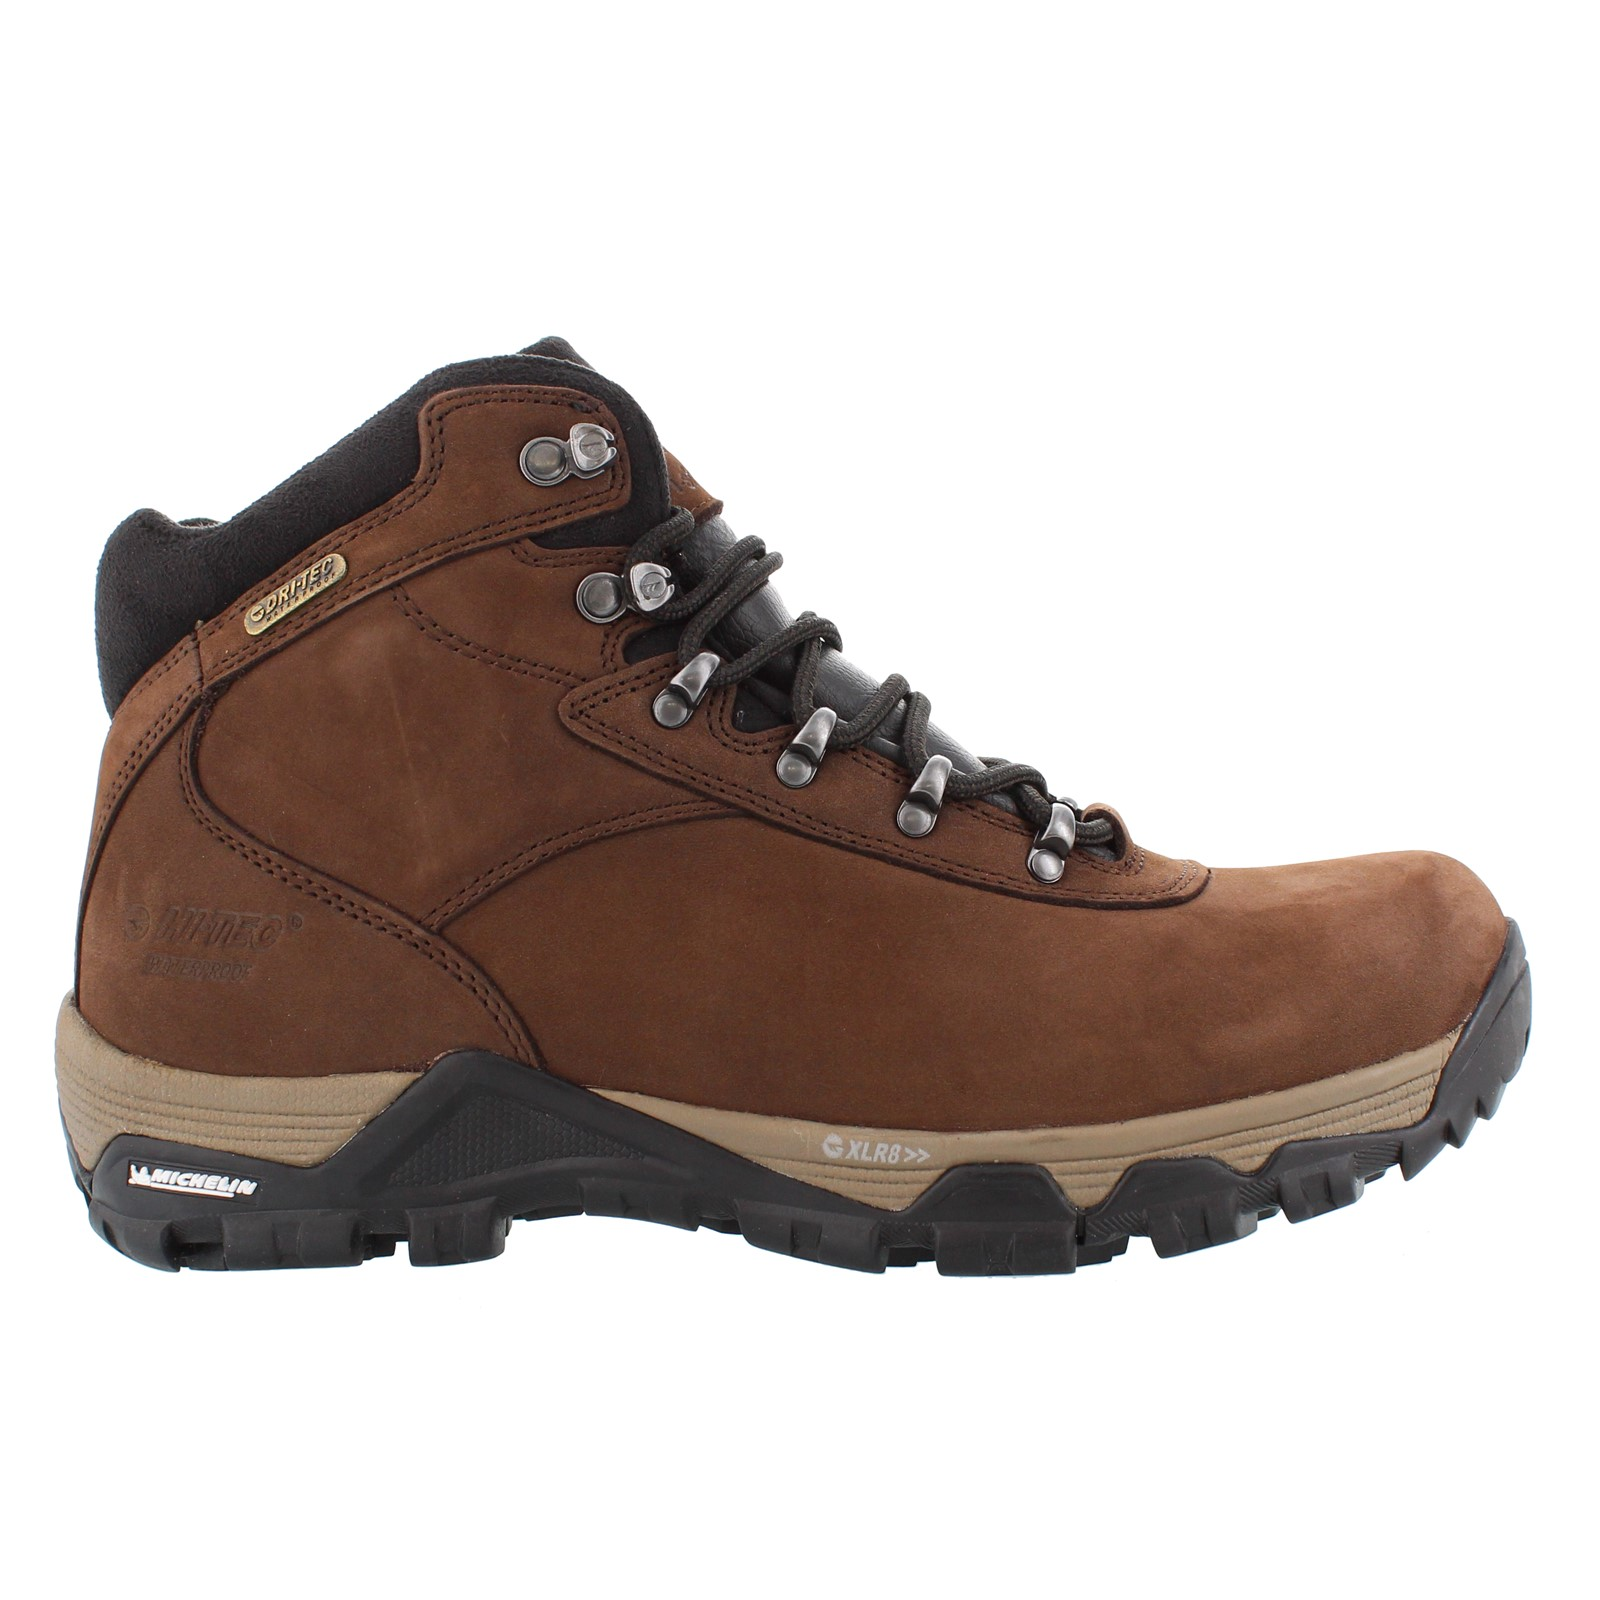 277bbba3df8 Men's Hi Tec, Altitude Ox Boots